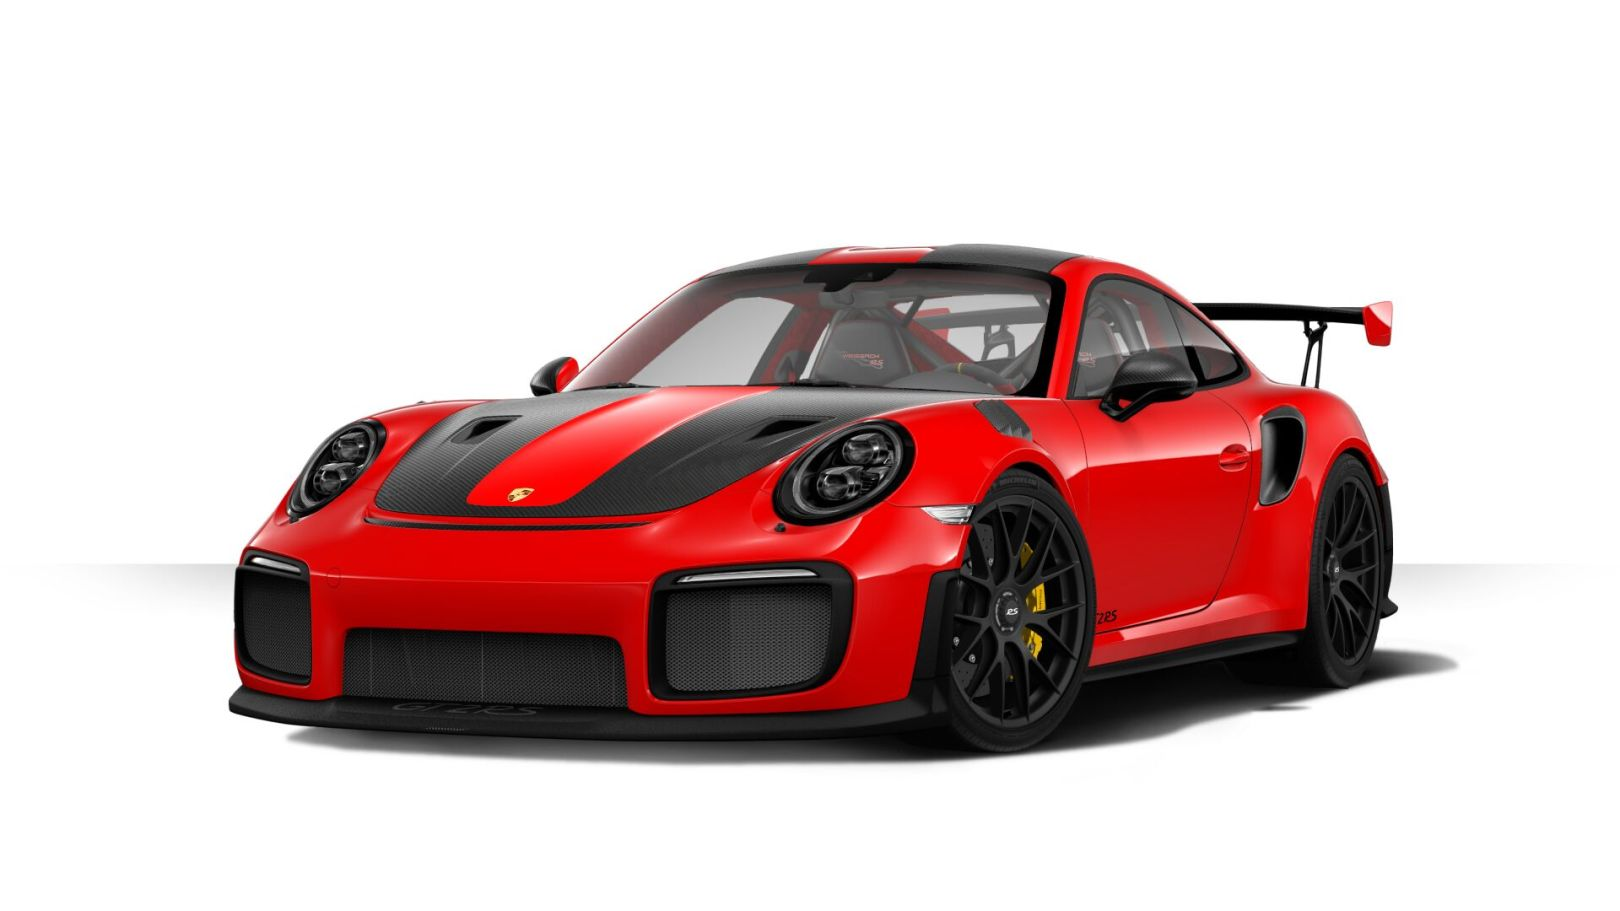 porsche s new configurator lets you build your own 911 gt2 rs and more idlesociety. Black Bedroom Furniture Sets. Home Design Ideas